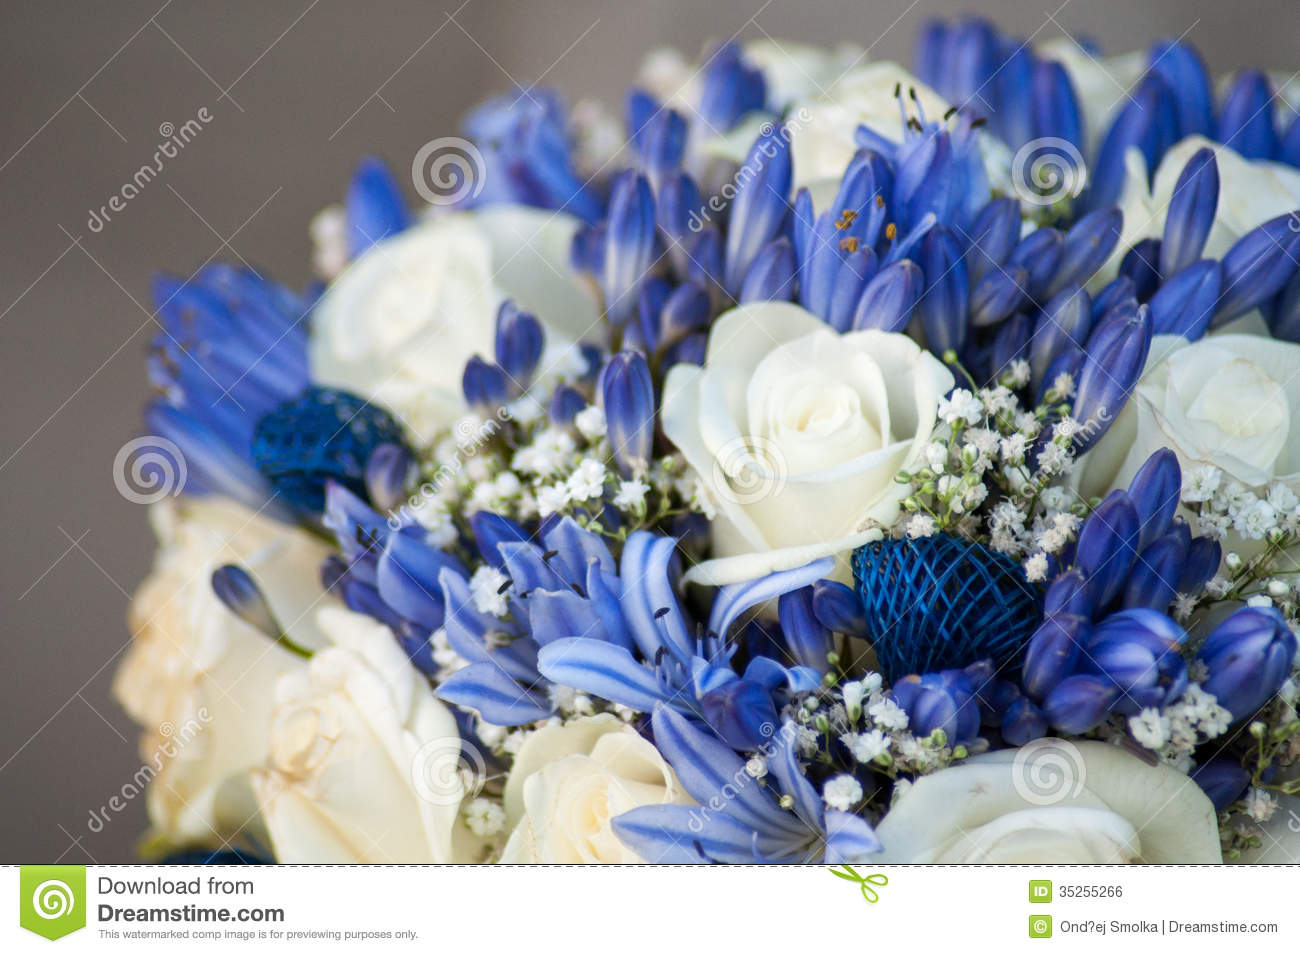 wallpaper flowers bouquet blue - photo #45